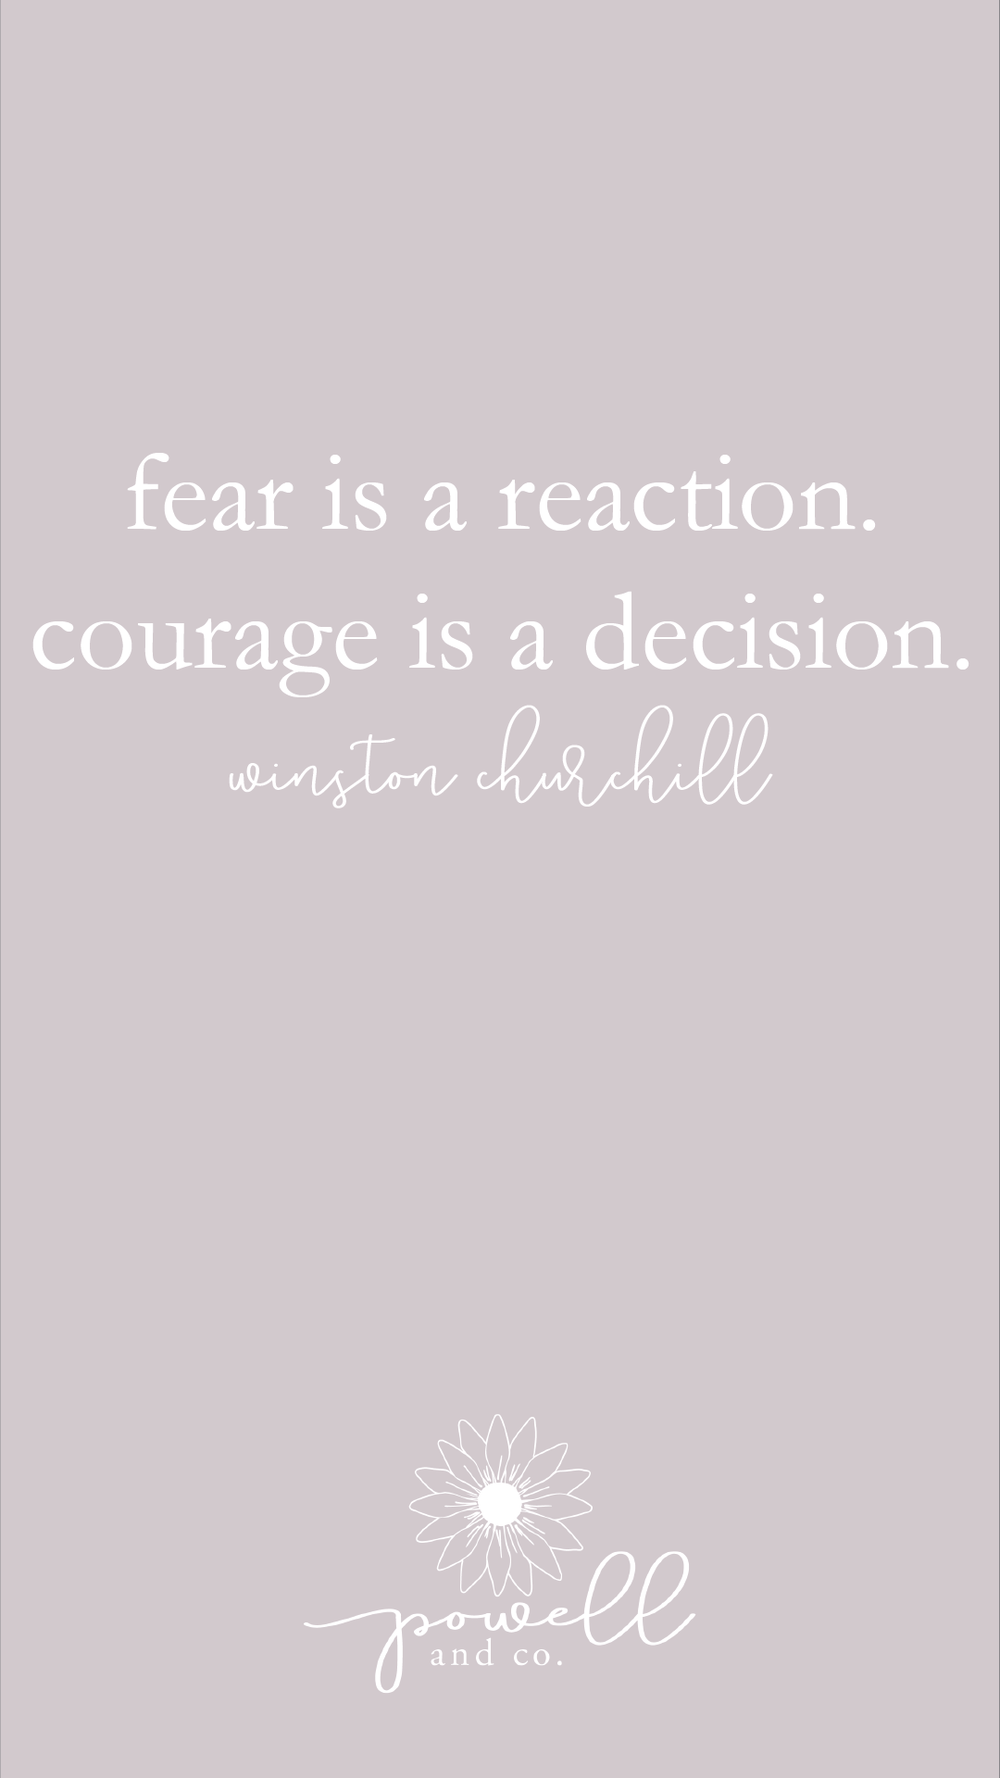 fearquote2-01.png